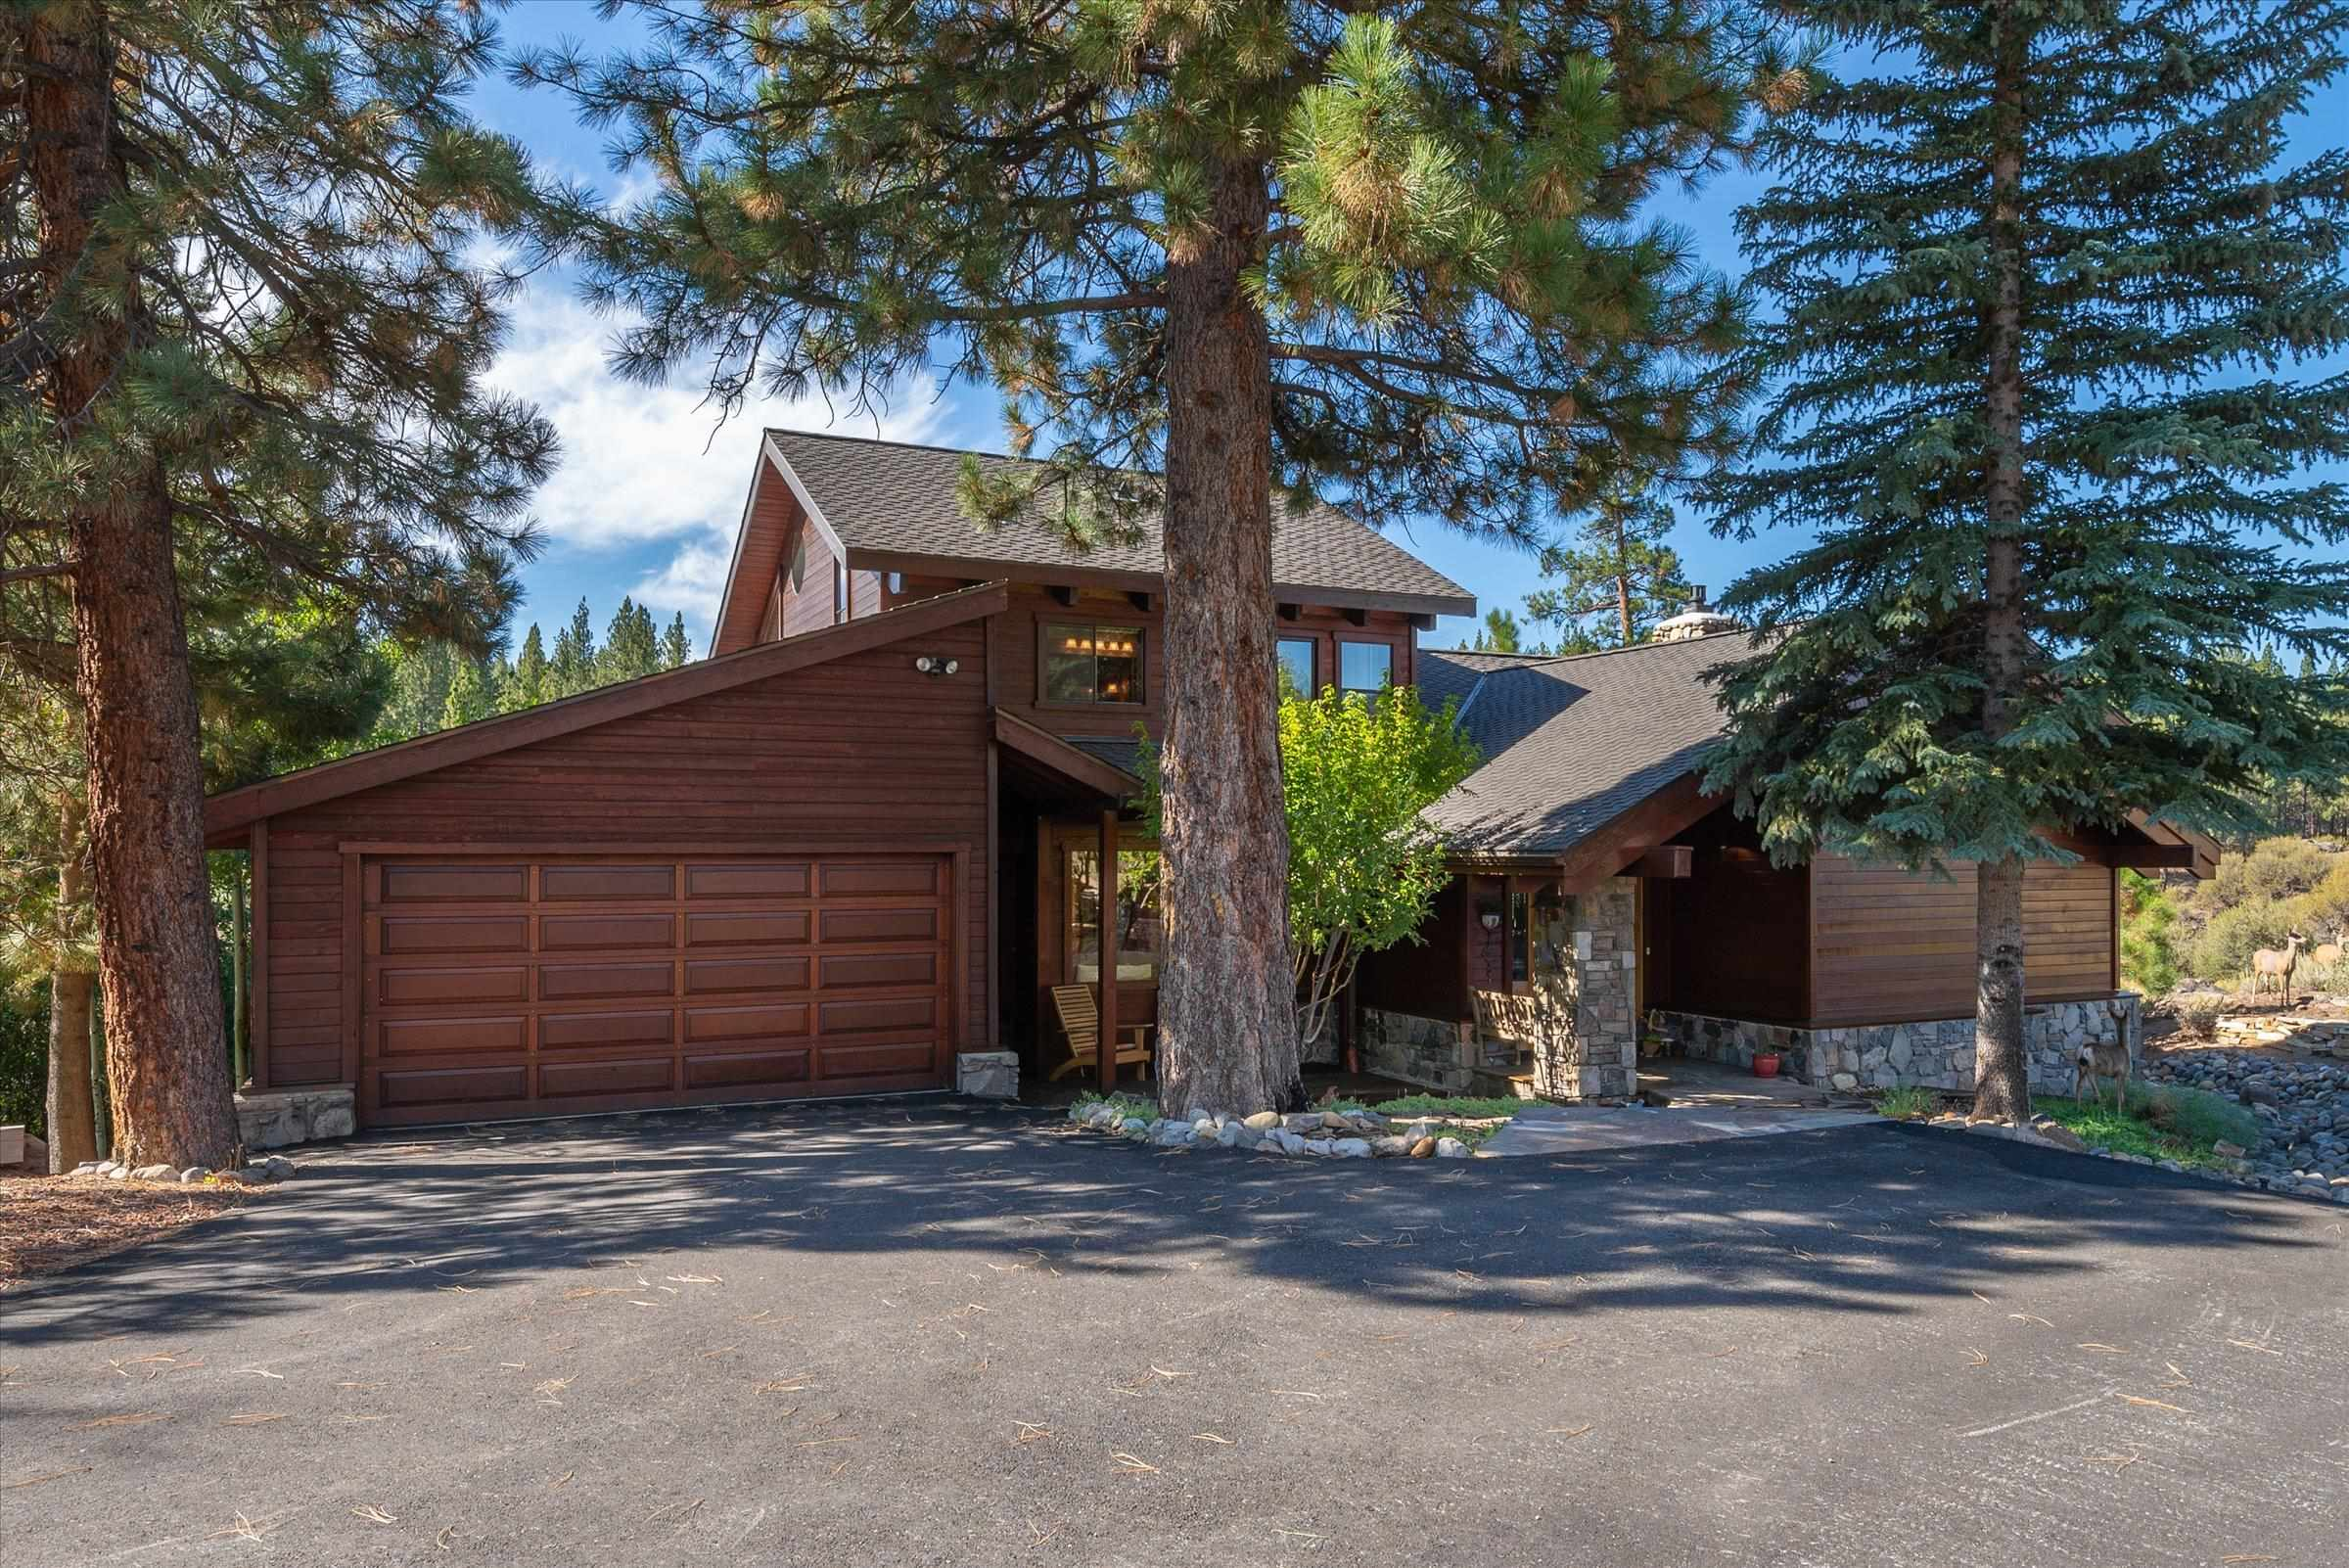 Image for 15349 Icknield Way, Truckee, CA 96161